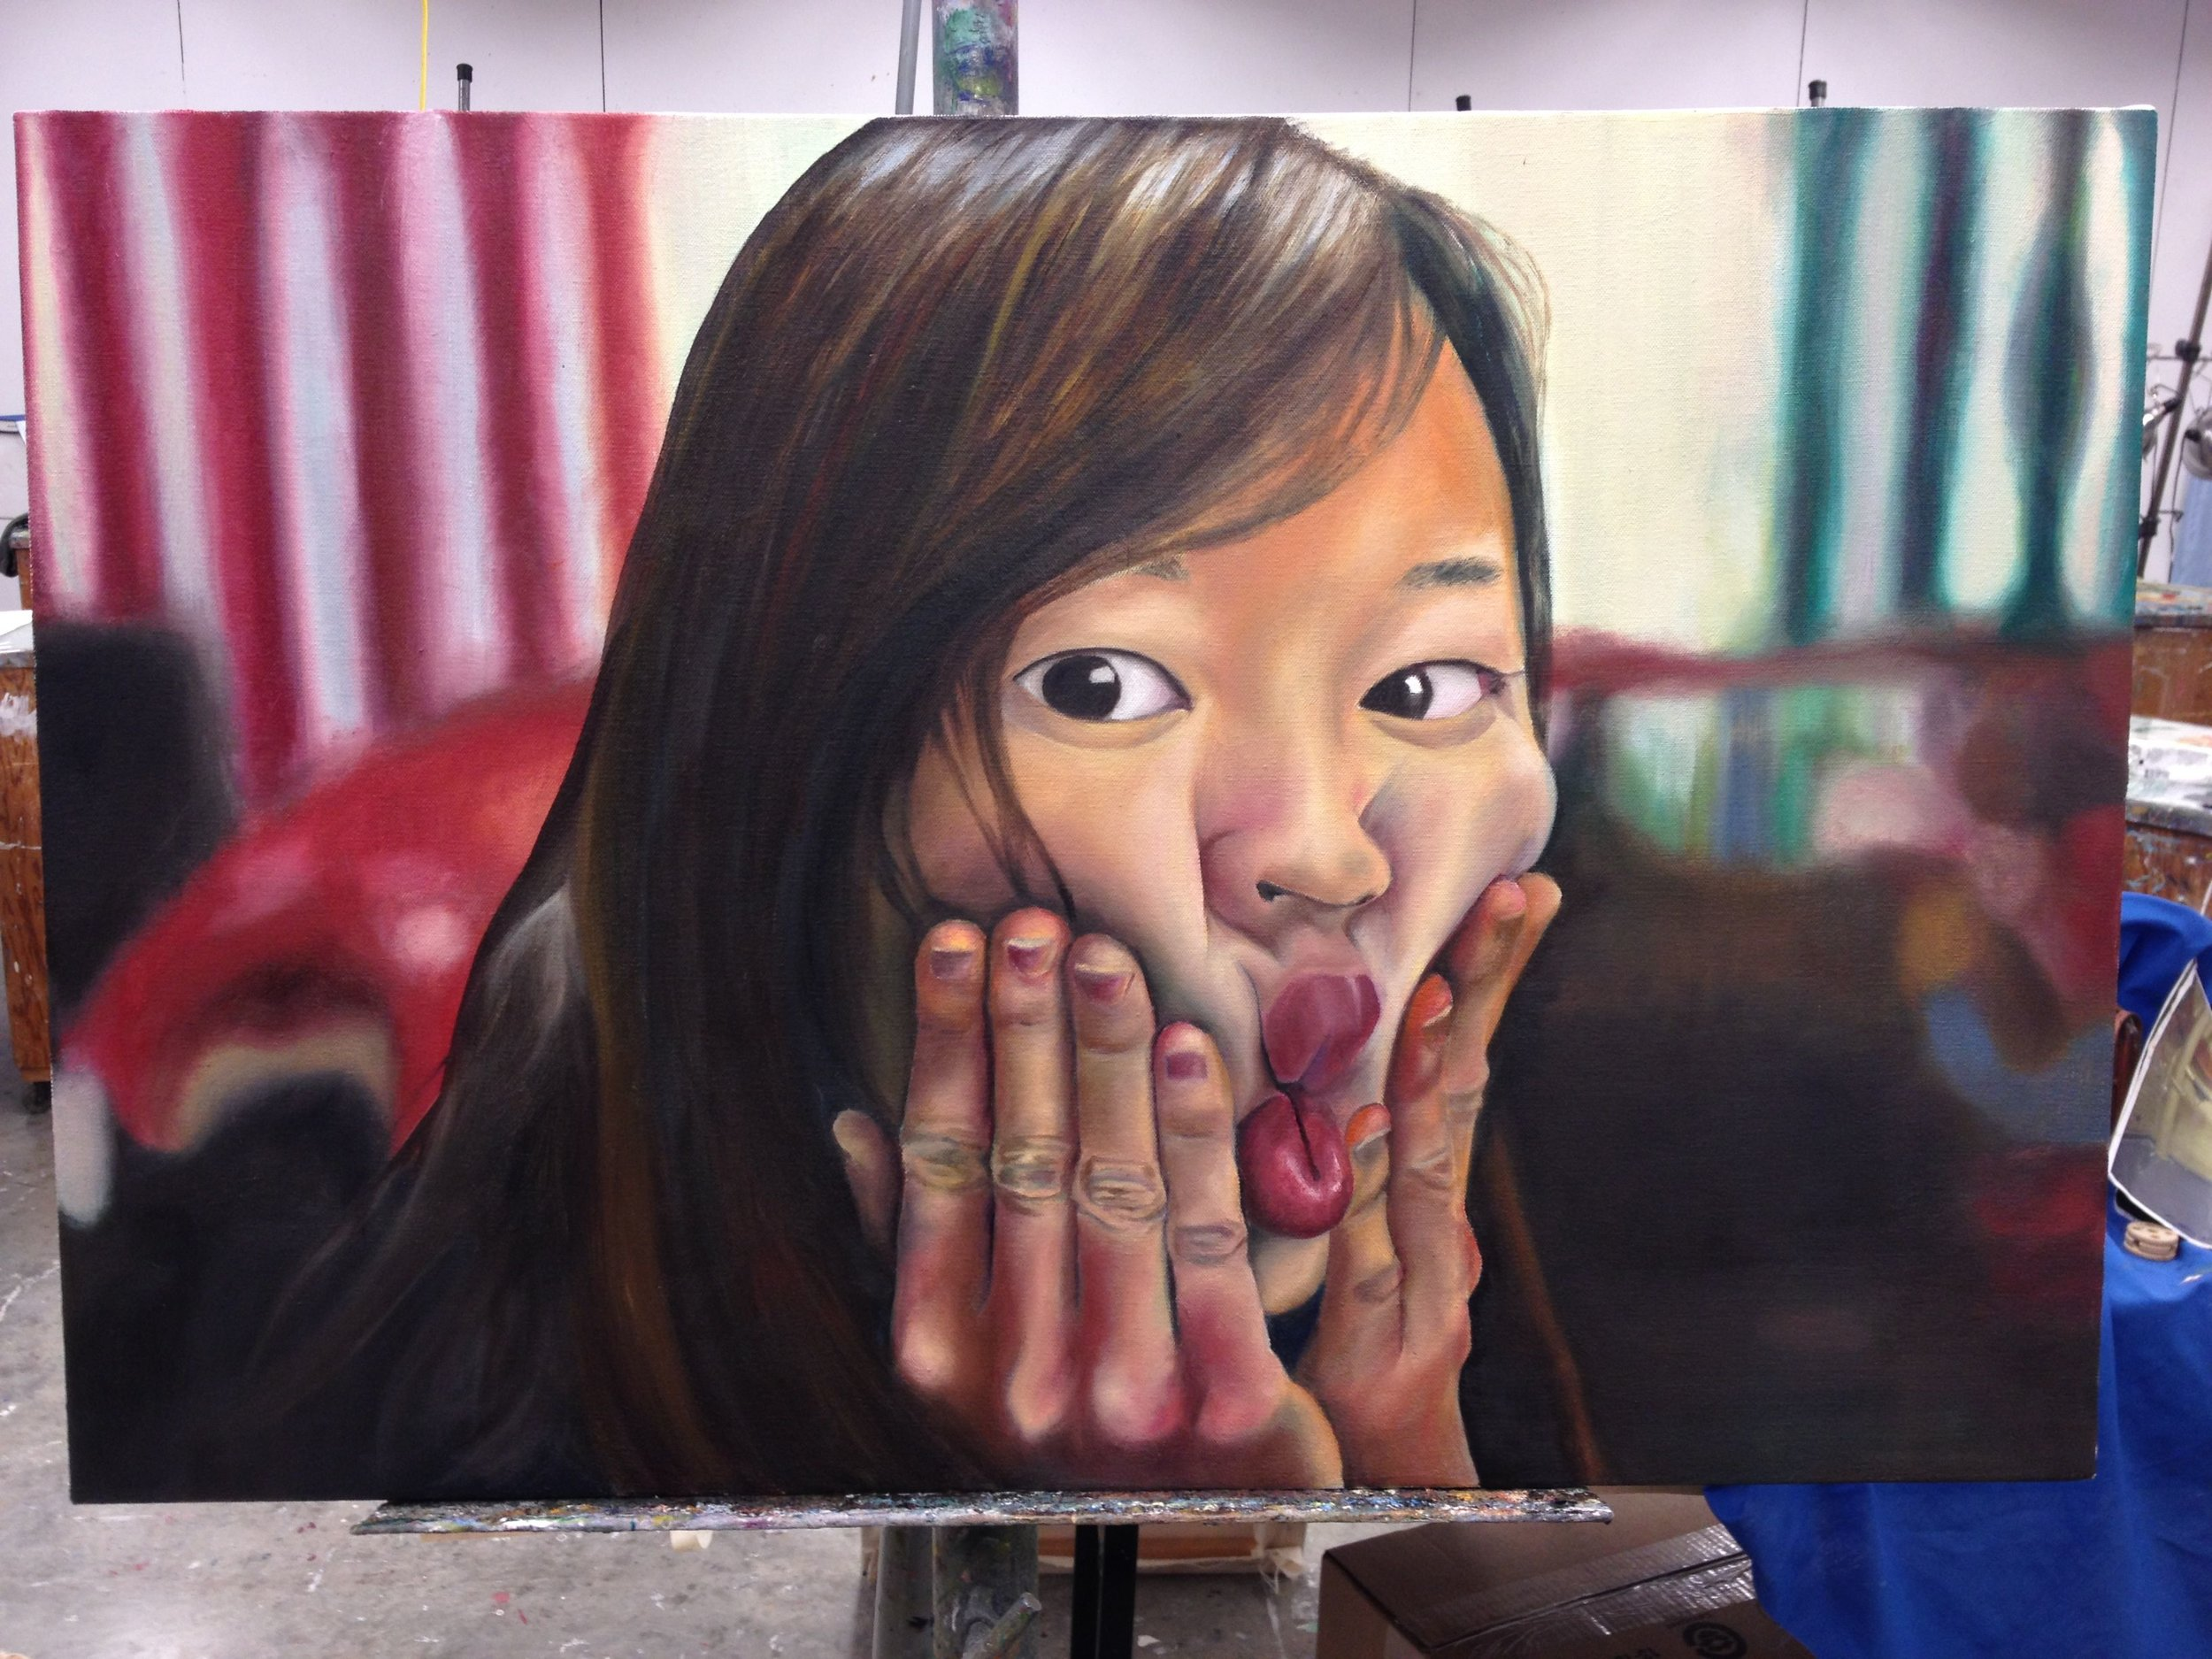 Another face for you. A fun oil painting self-portrait.